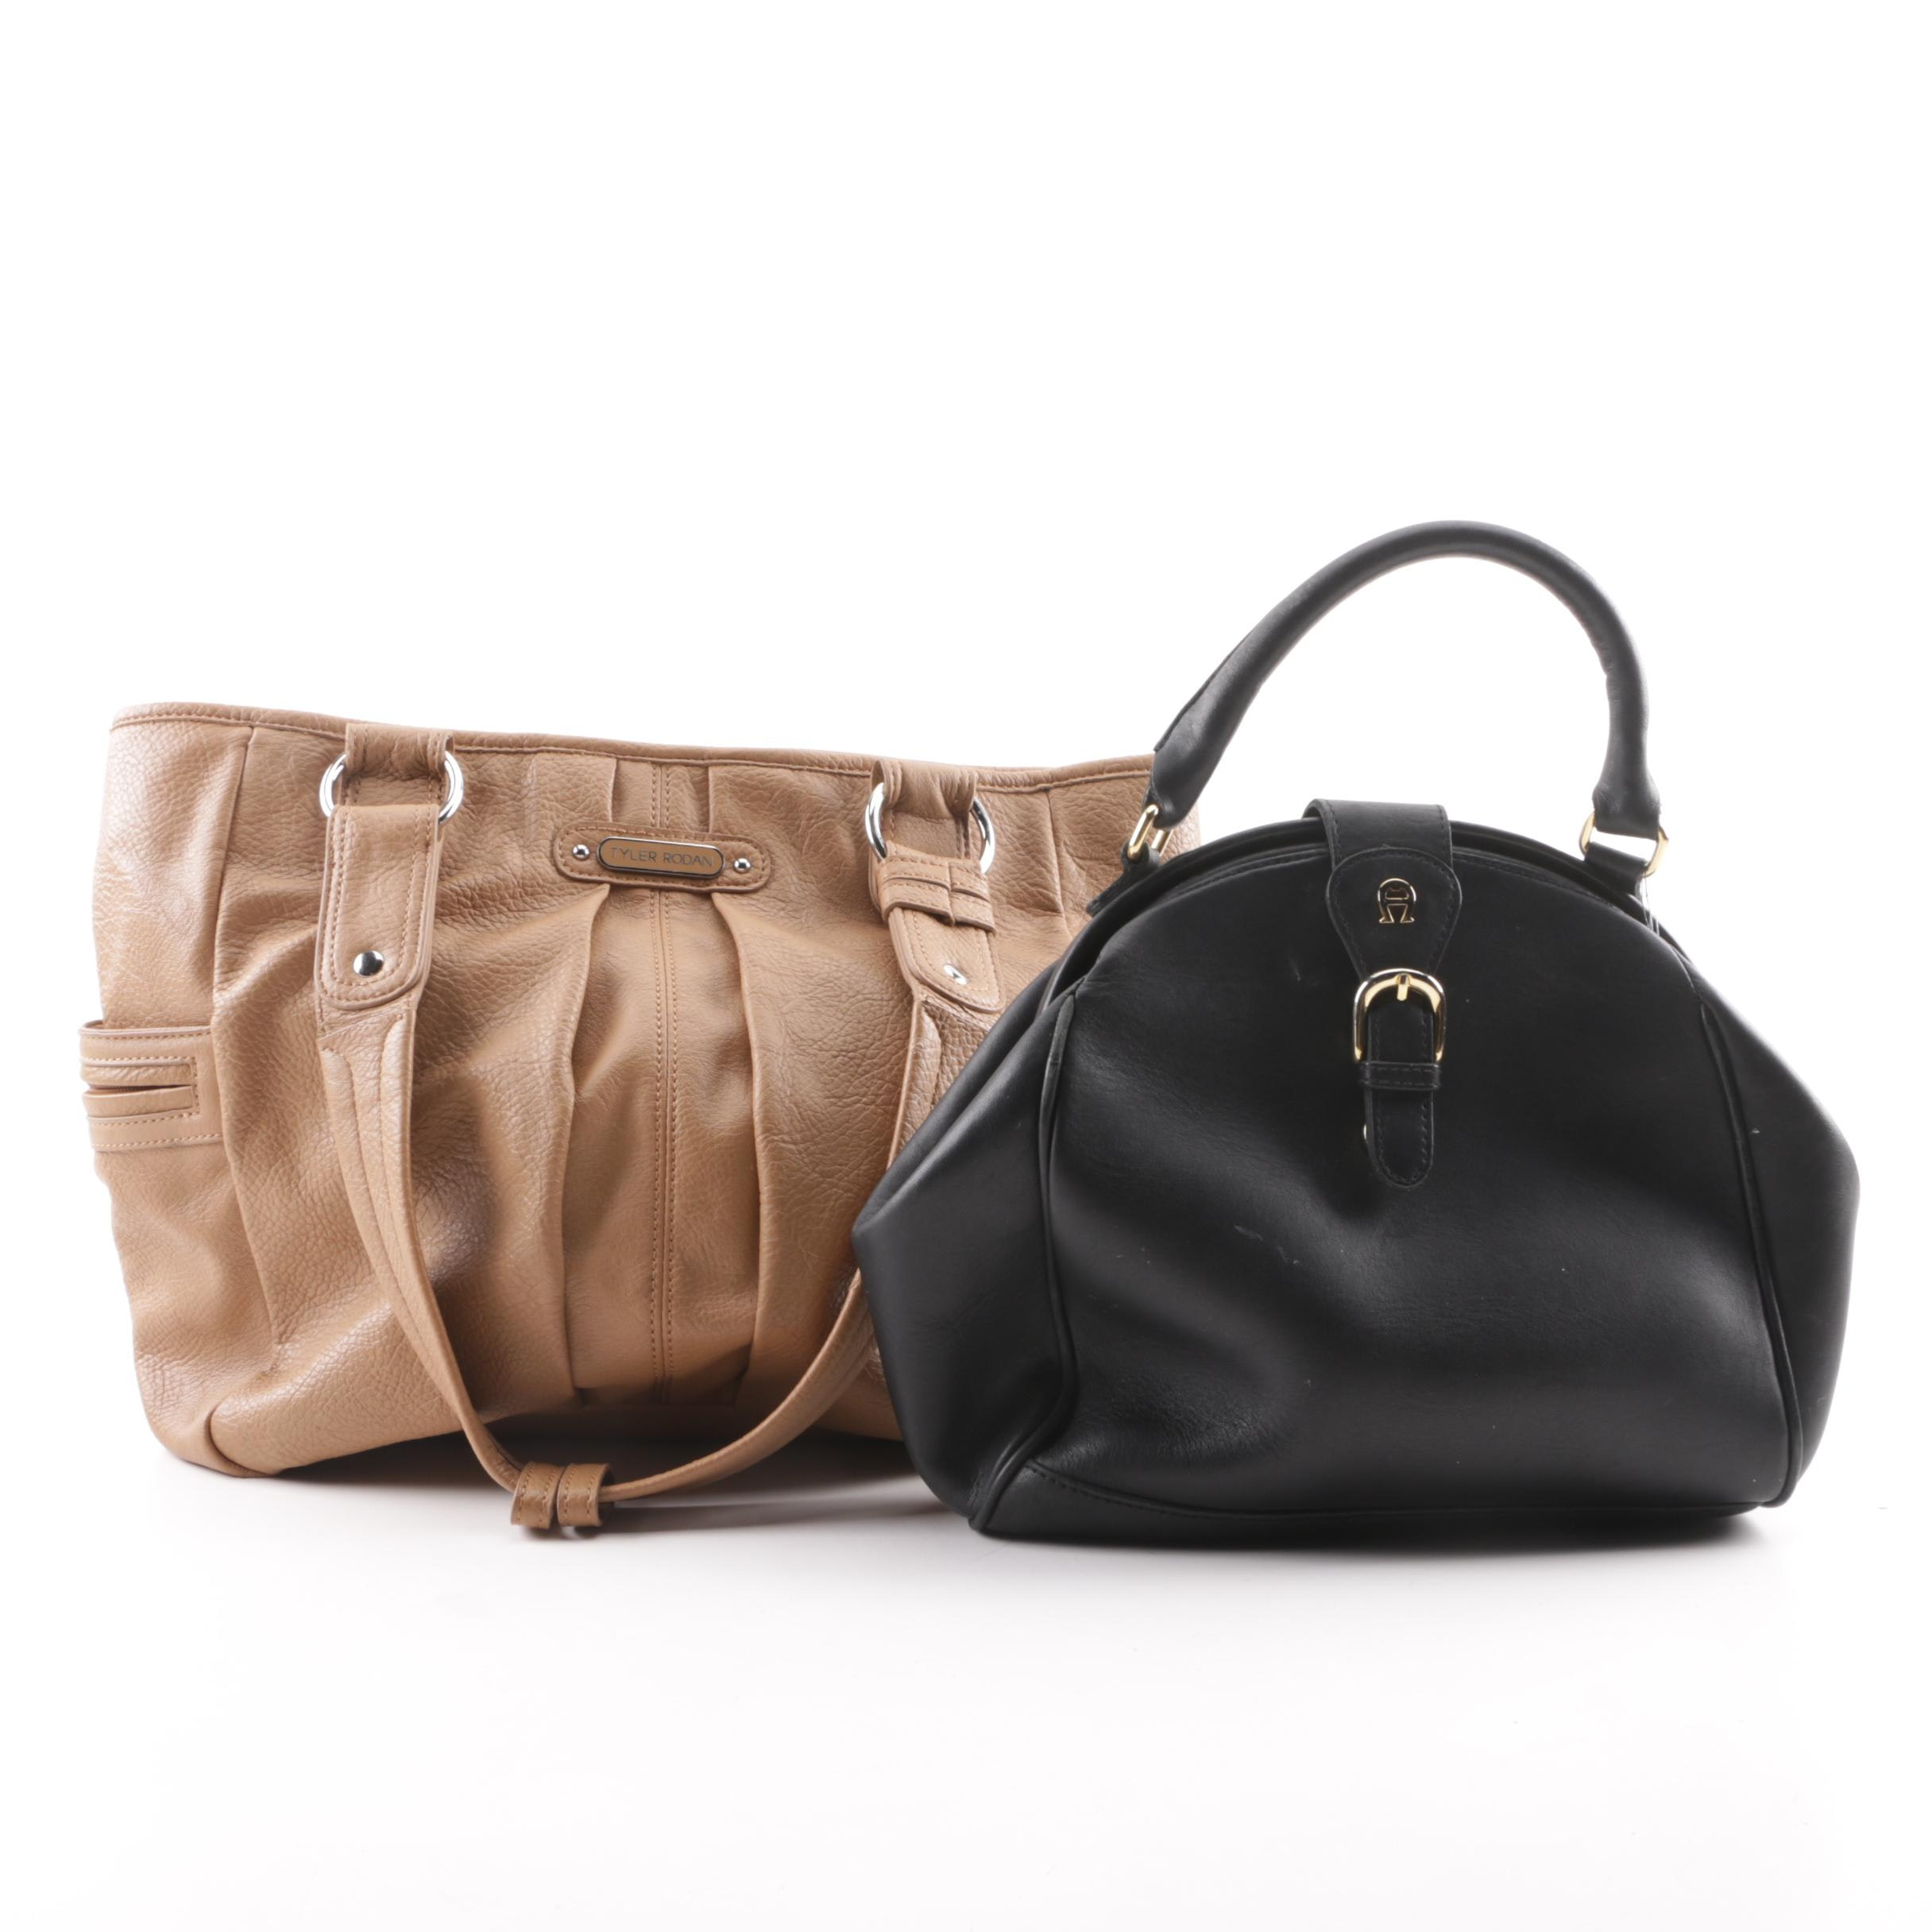 Etienne Aigner and Tyler Rodan Leather Handbags